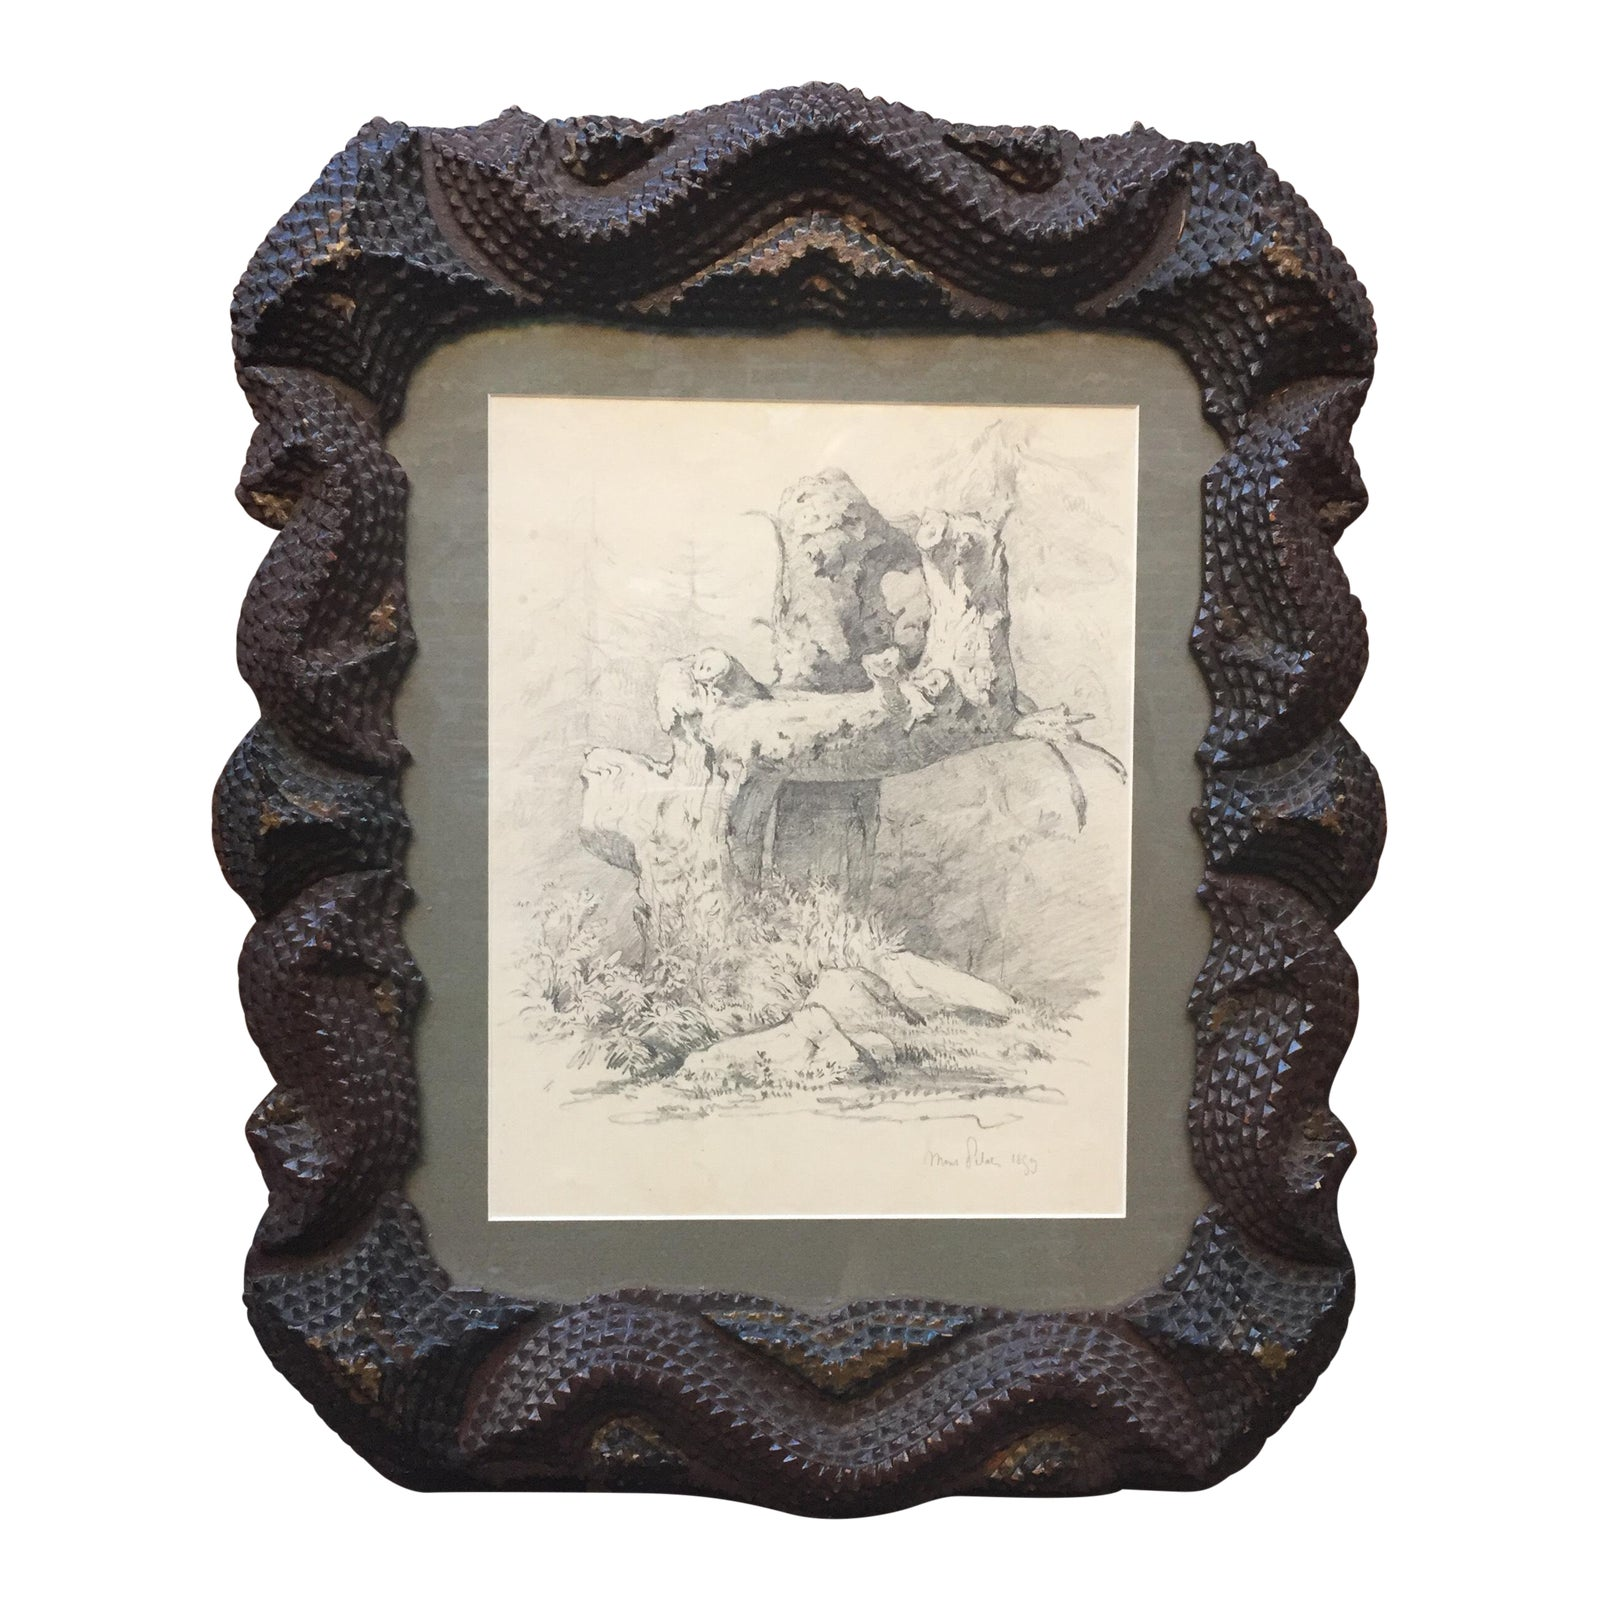 Serpentine Tramp Art Frame With Graphite Drawing | Chairish